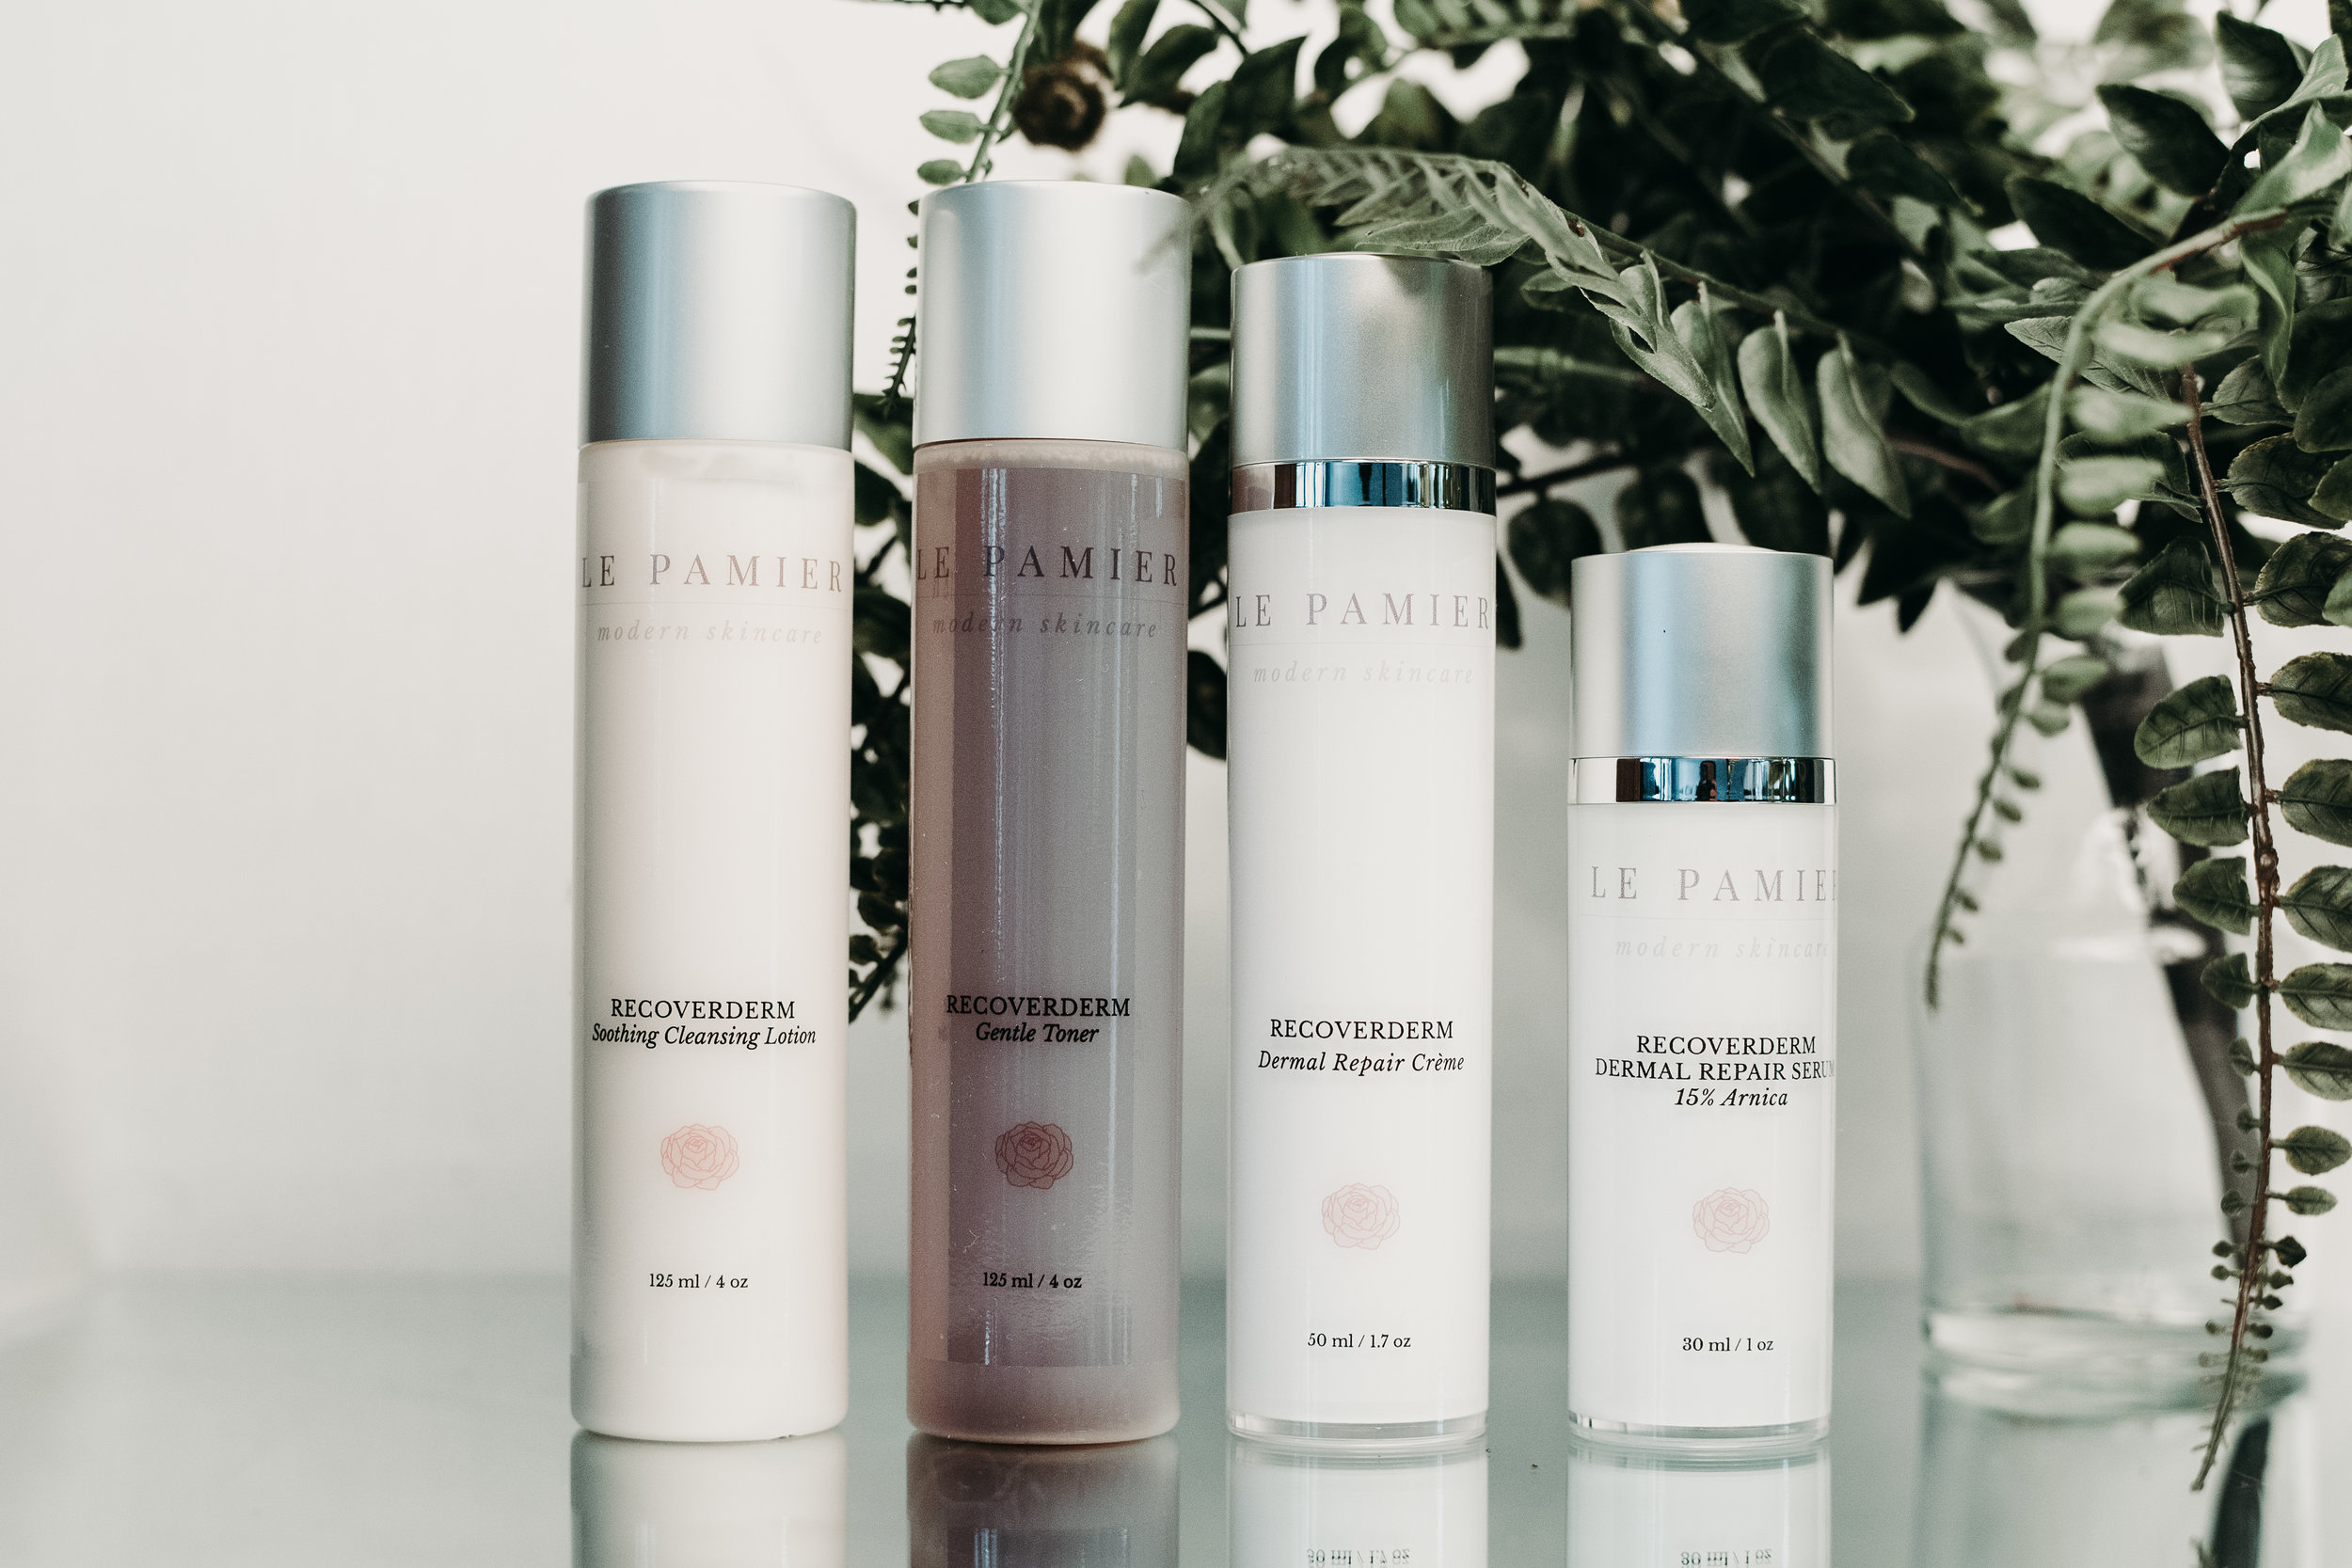 The Recoverderm Collection